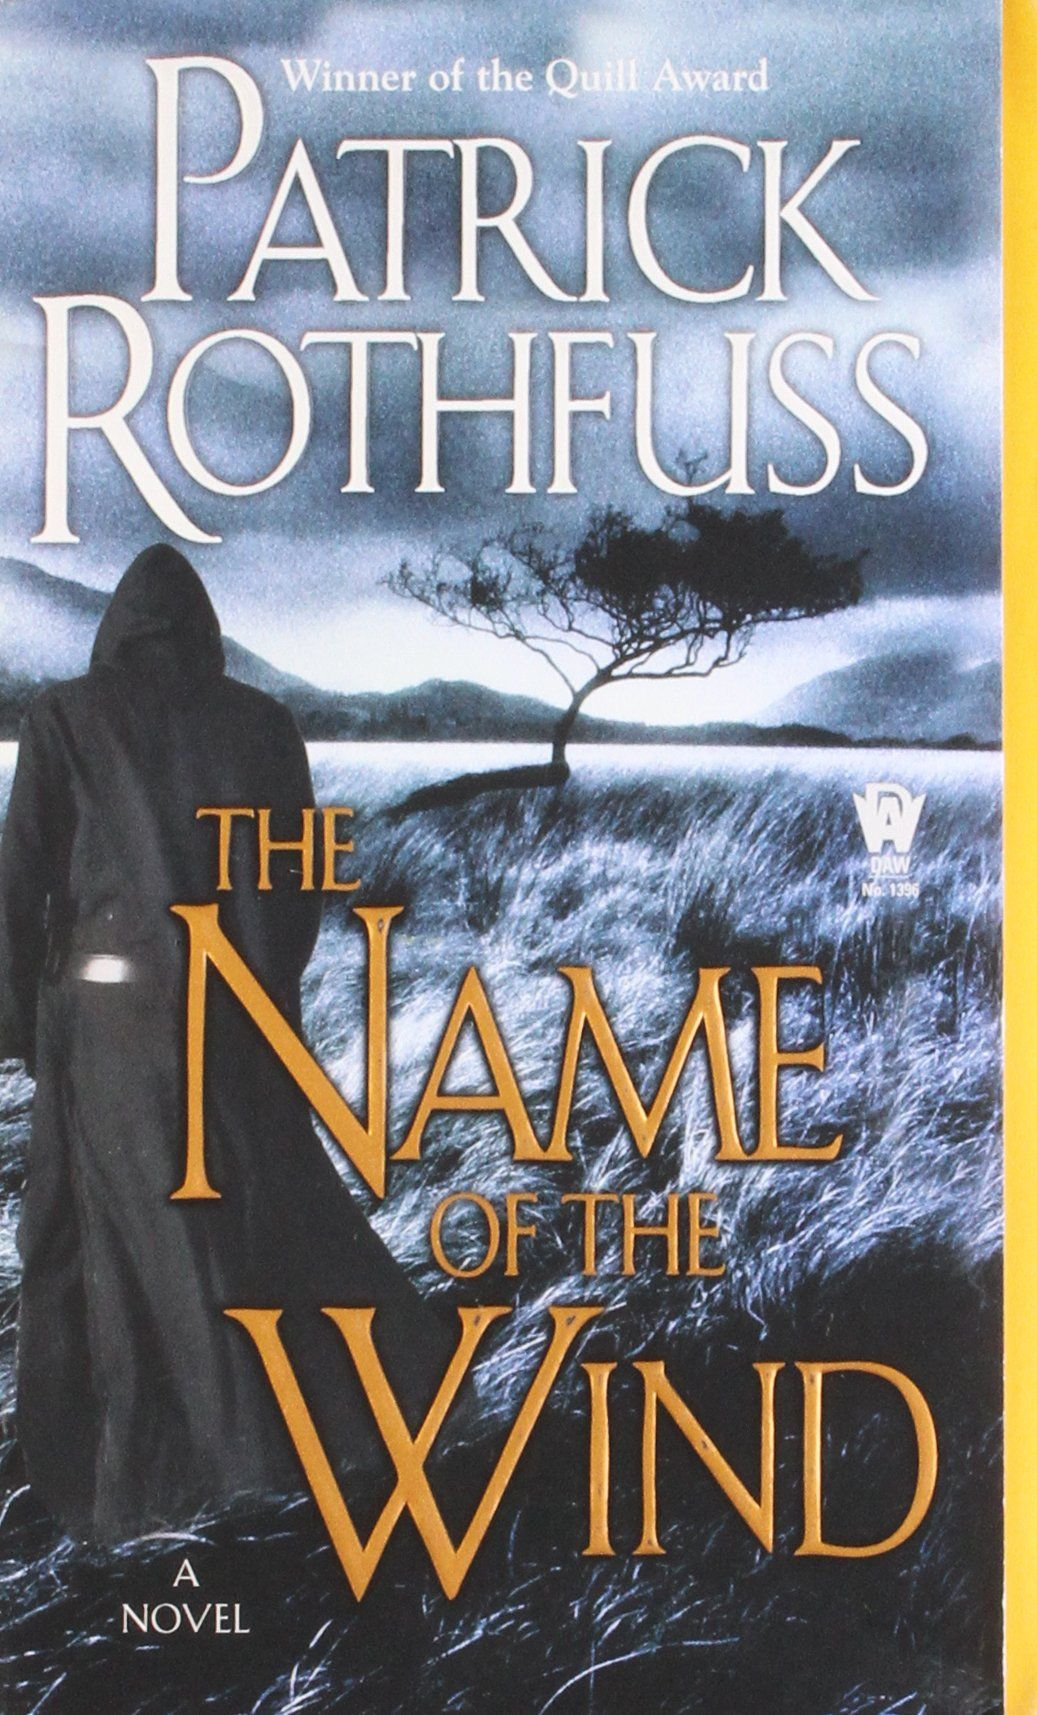 Nuevo Libro De Patrick Rothfuss 7 Book Series That Will Rekindle Your Love Of Reading